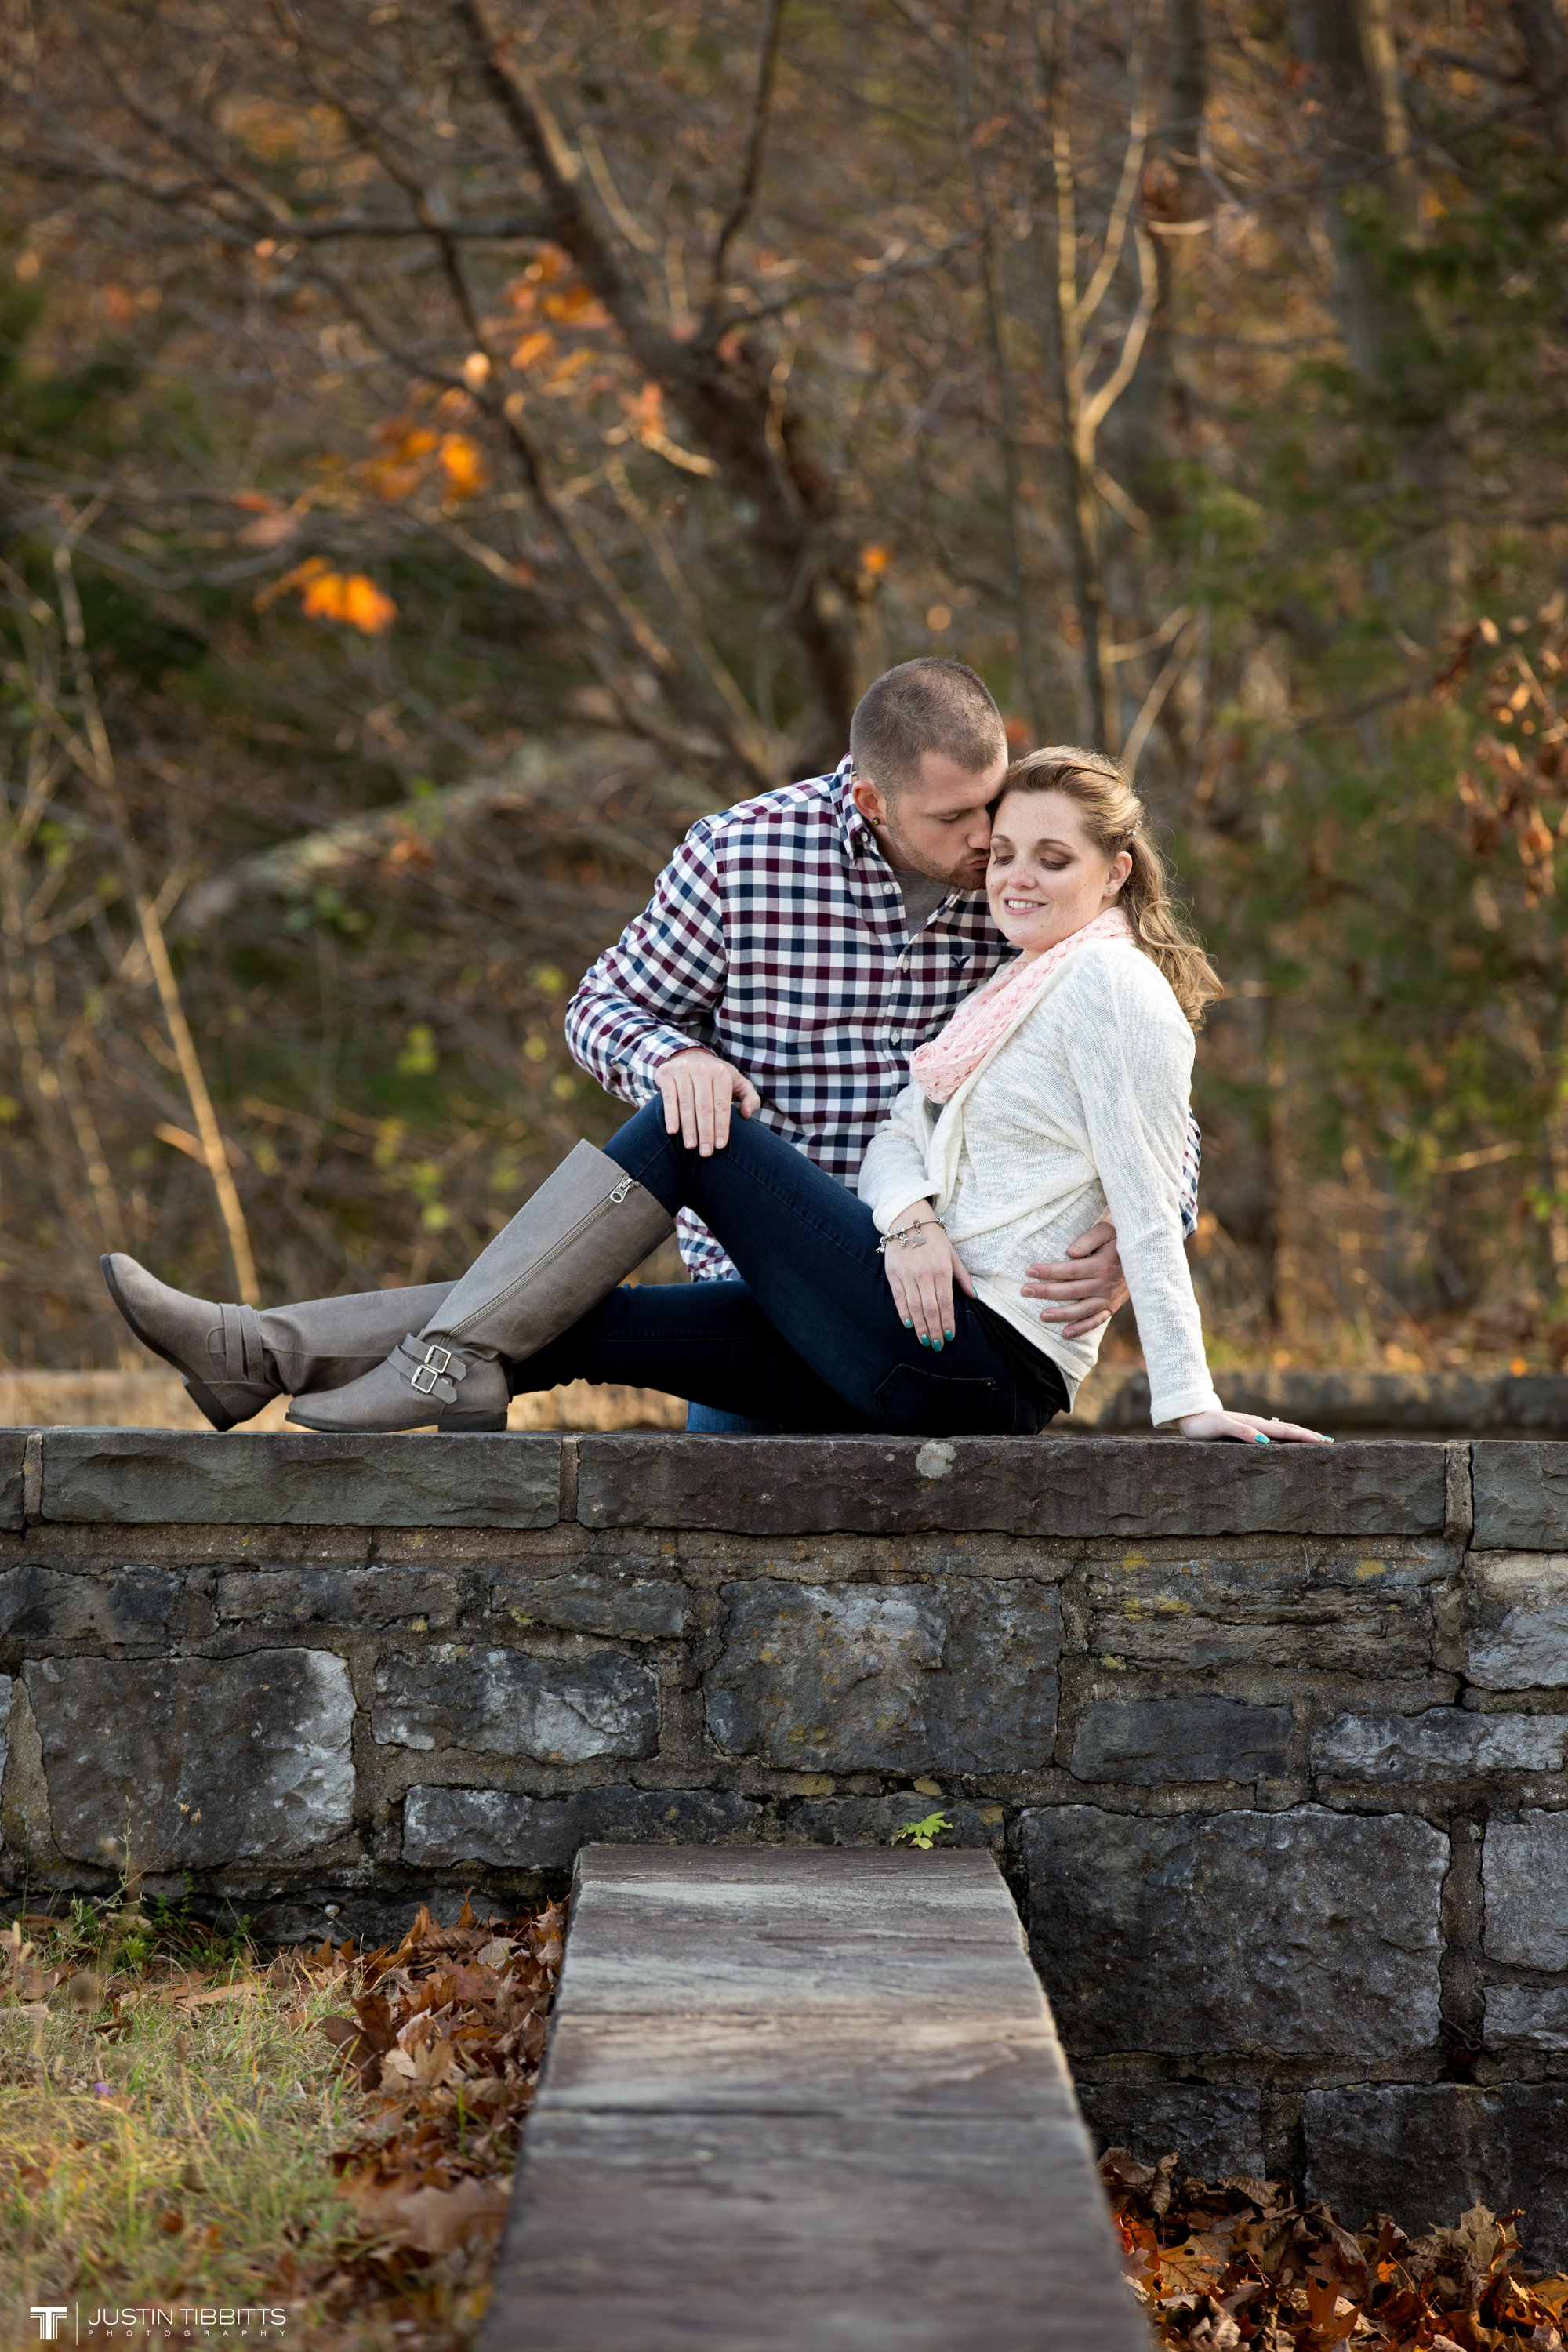 Justin Tibbitts Photography Ashlee and Steves Thatcher Park, New York Engagement Shoot-88